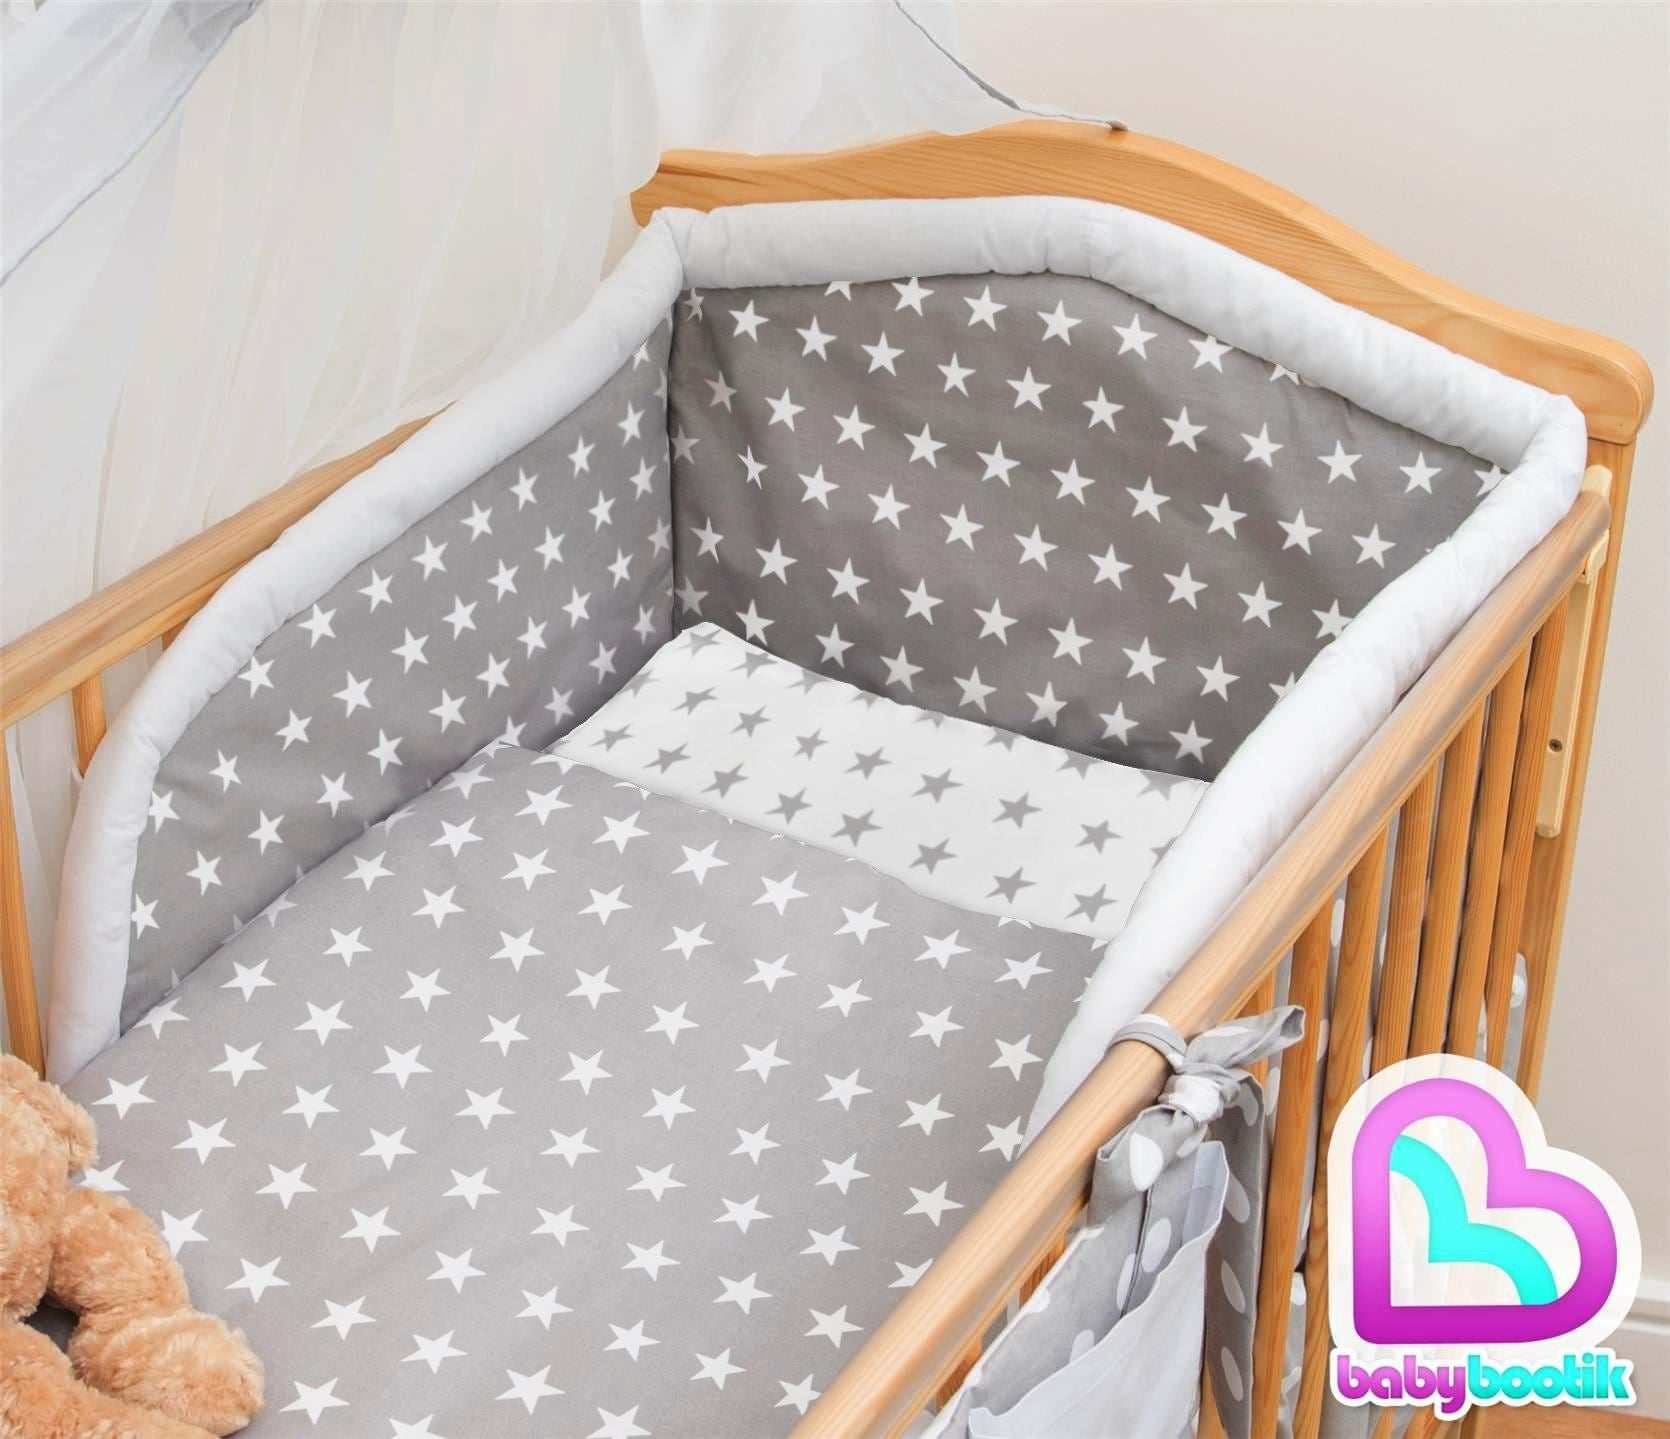 6 Piece Baby Cot Bedding Set With 4 sided Bumper to fit 120x60 cm Pattern 20